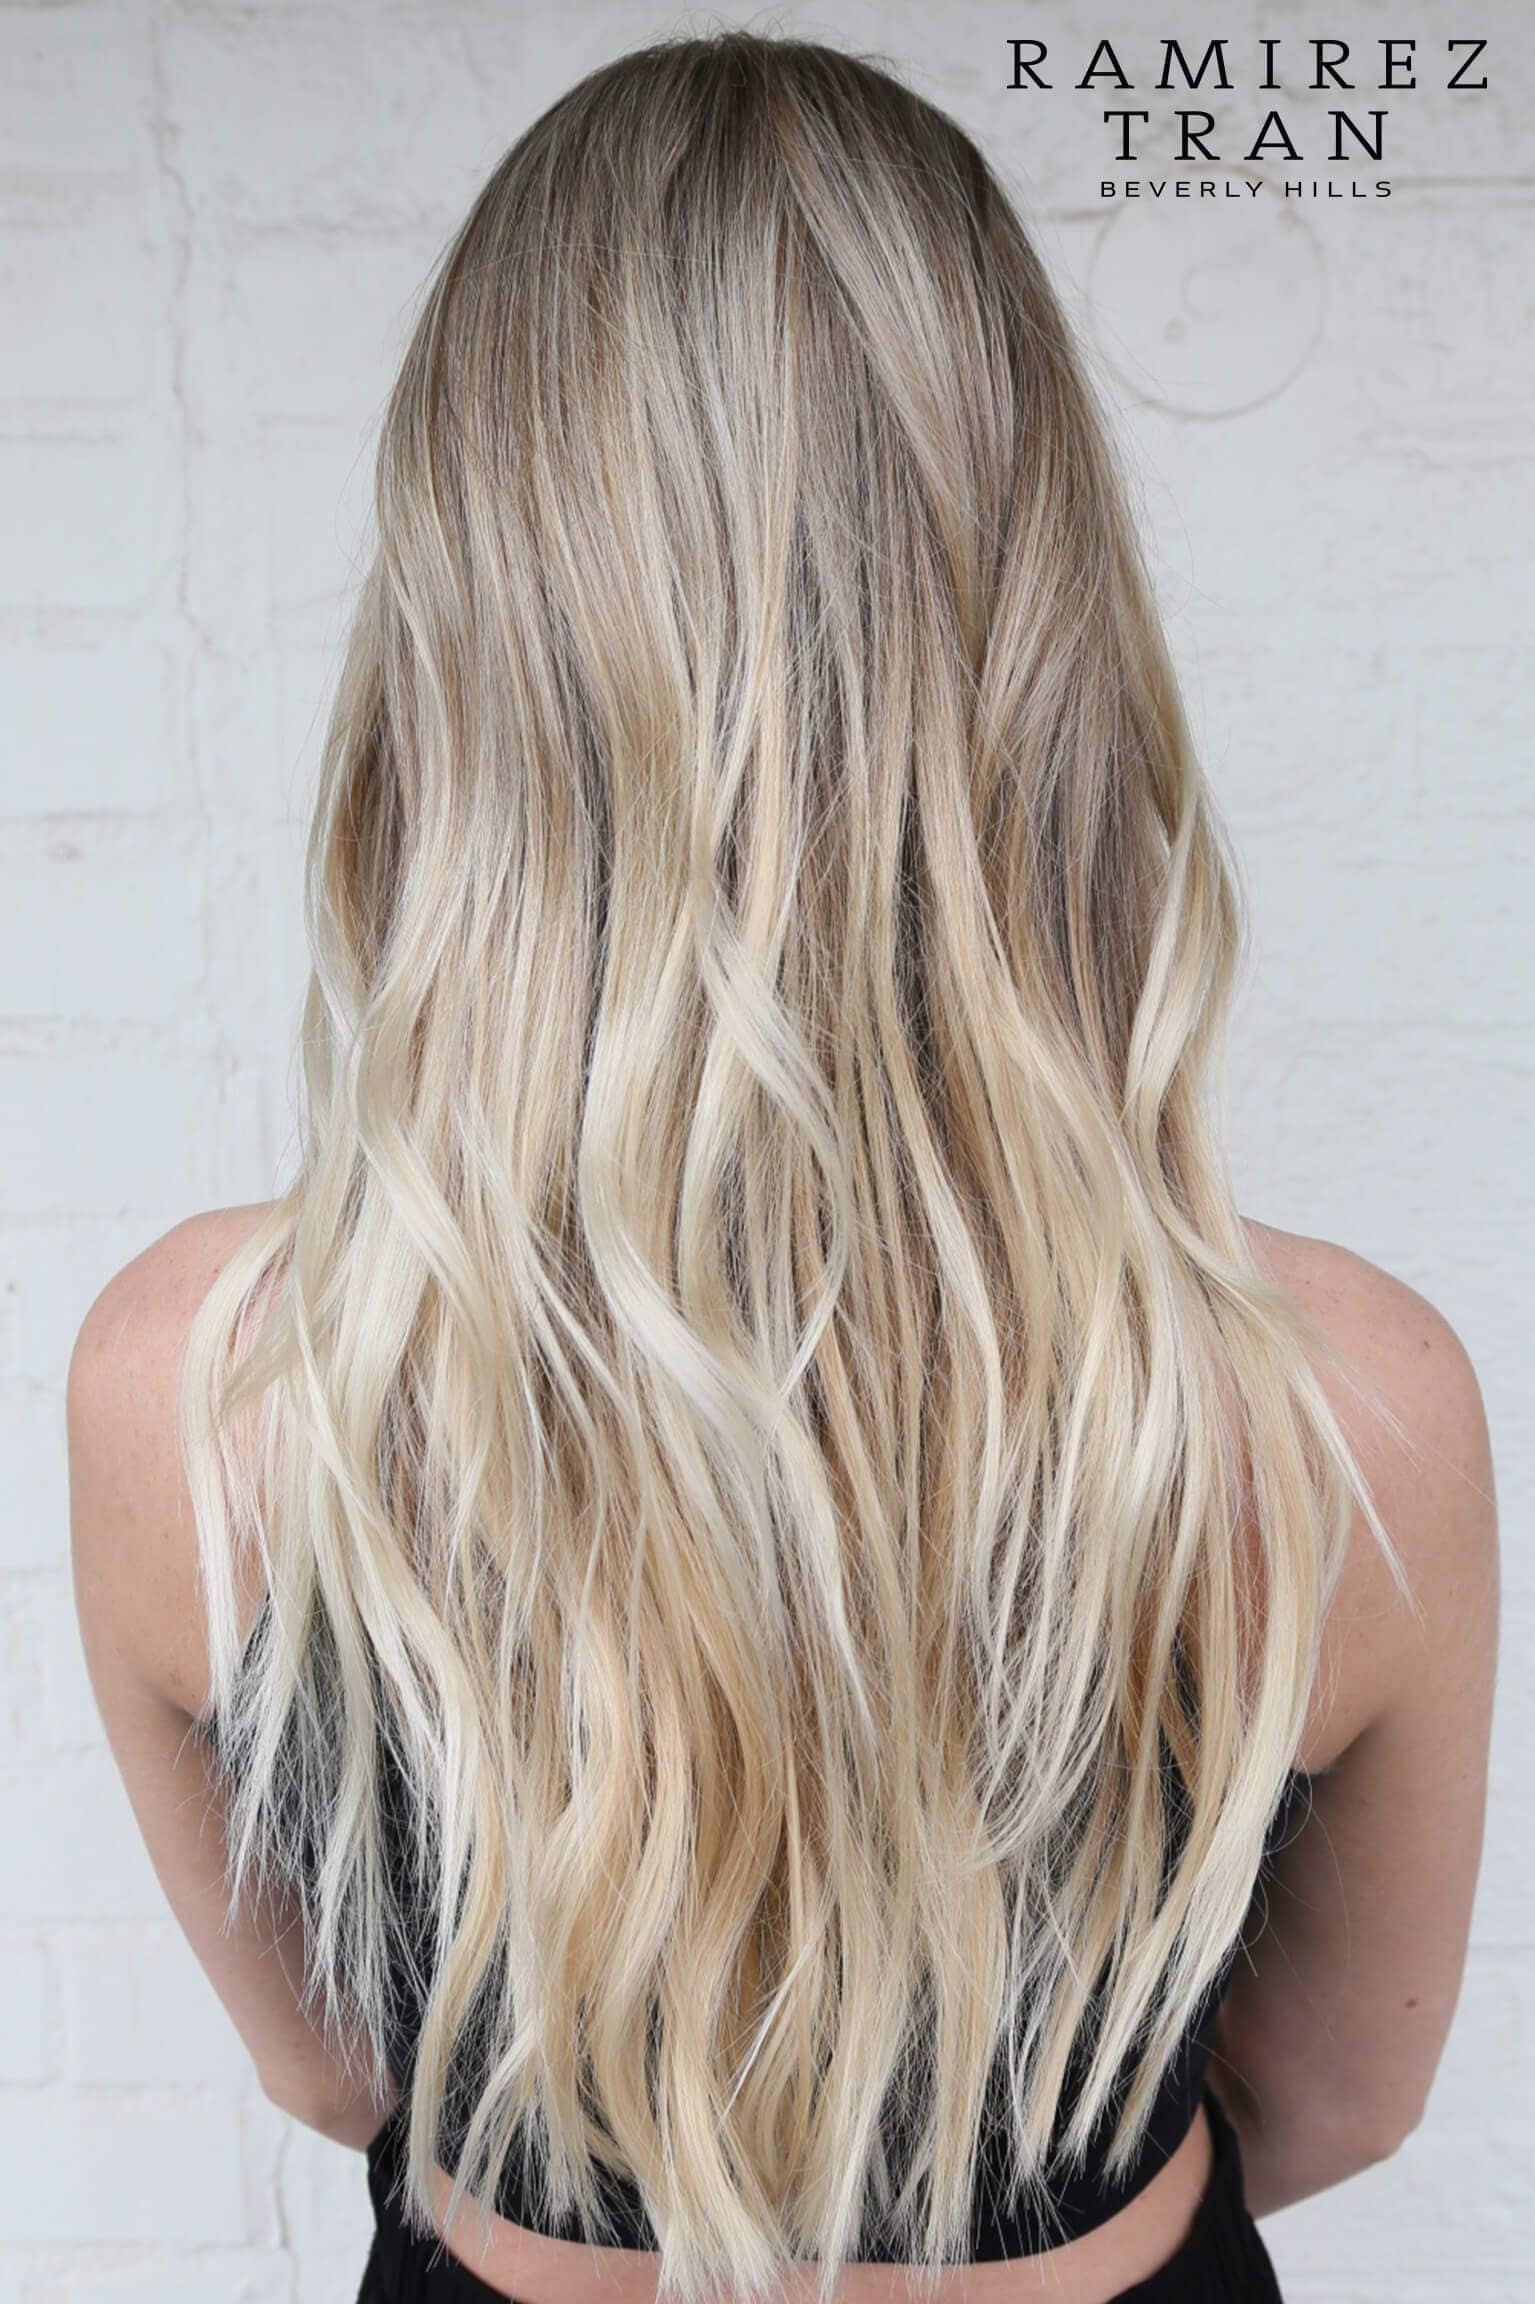 Blonde Balayage for Longer Hair